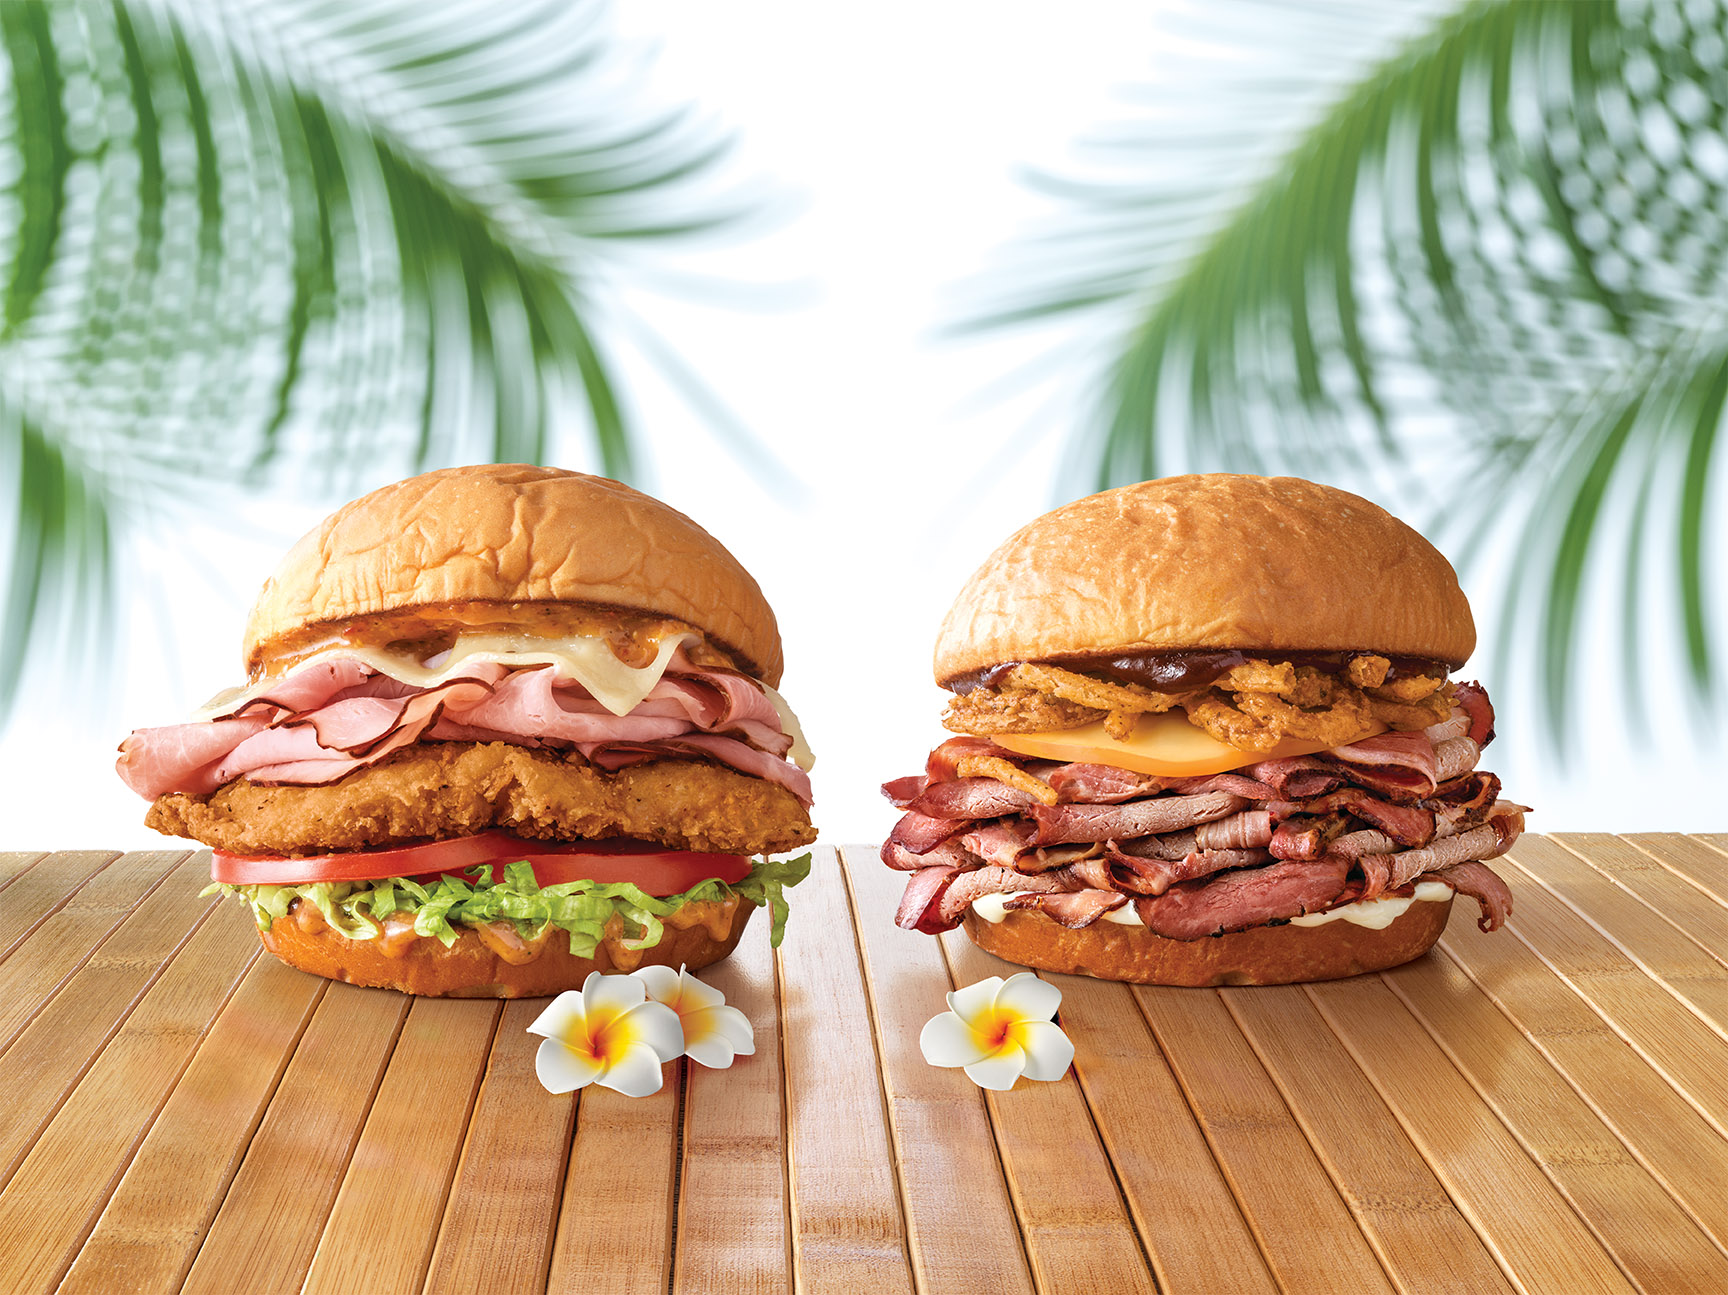 Arby's Is Selling a Hawaiian Getaway For Only $6—But There's a Catch